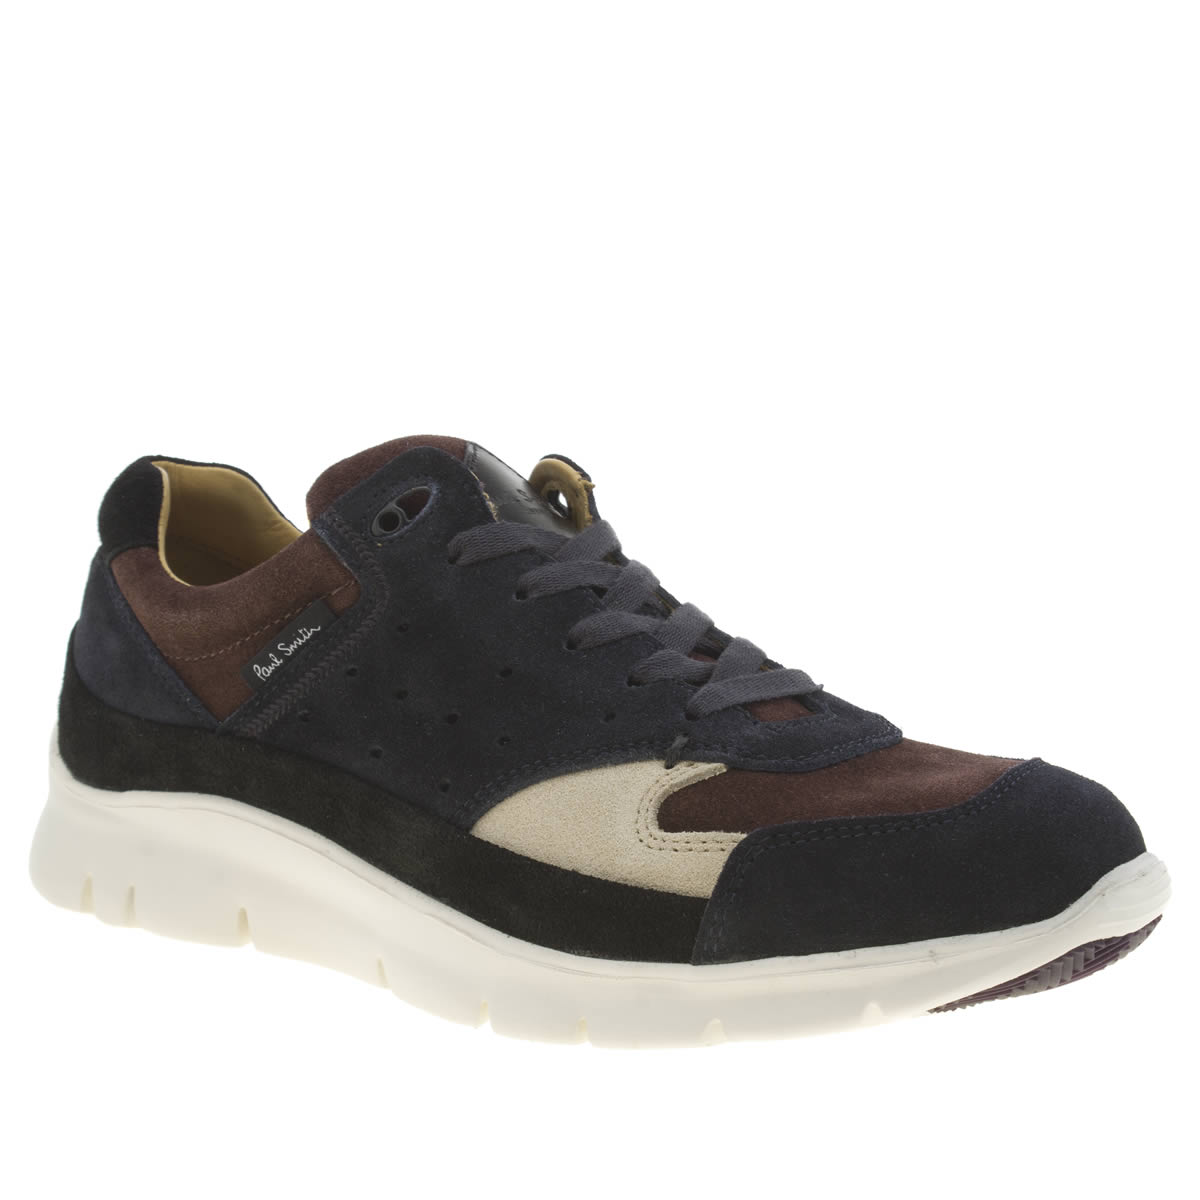 Paul Smith Shoes Paul Smith Shoes Black & Brown October Mens Trainers